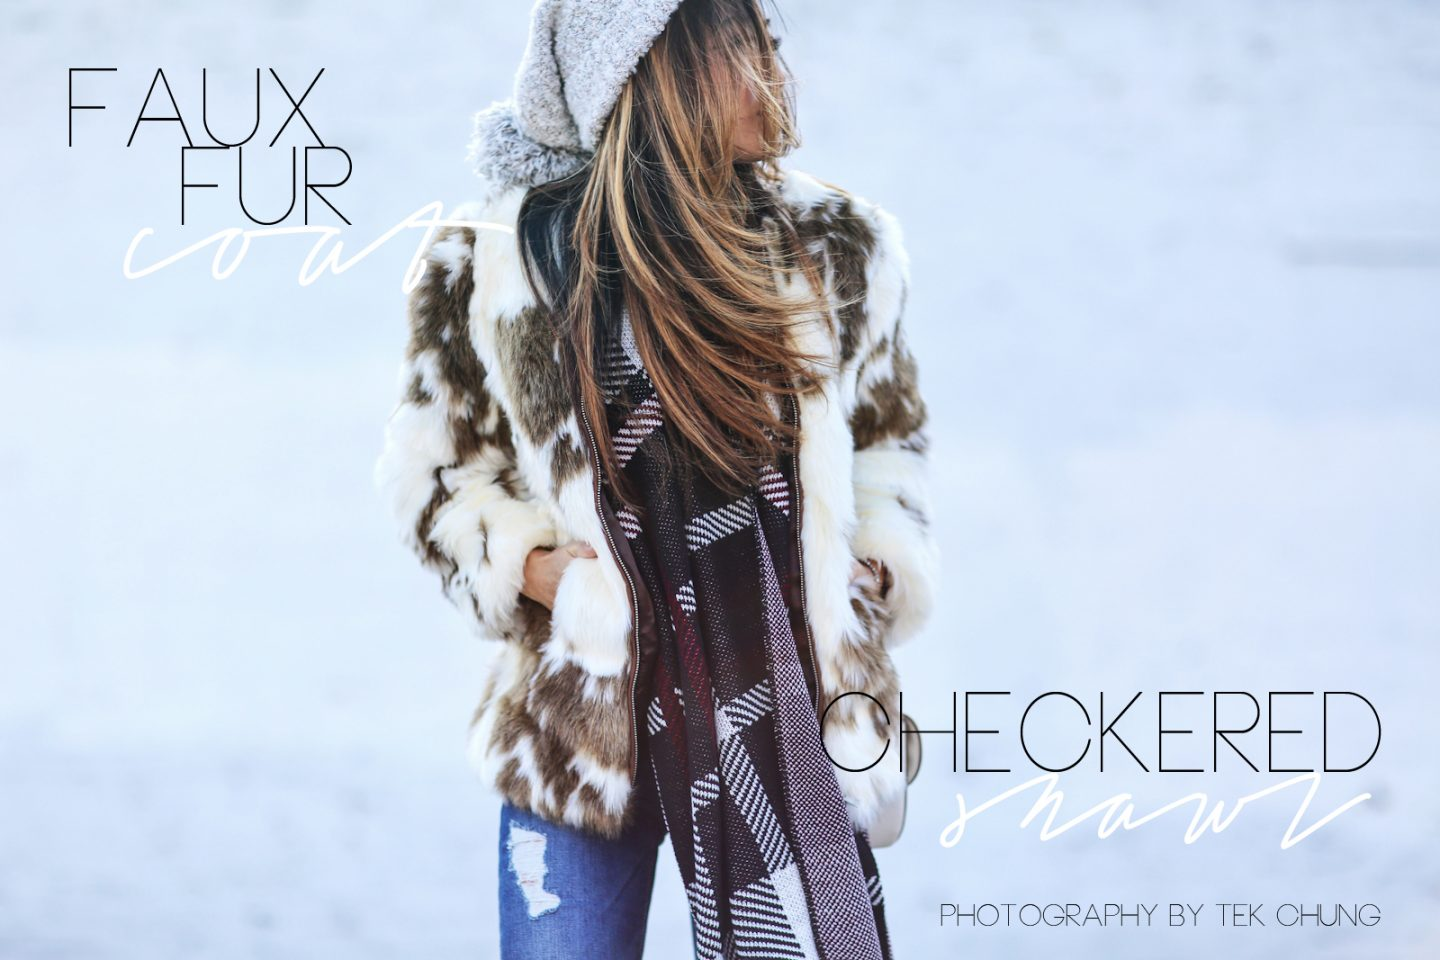 faux fur and checkered shawl winter look